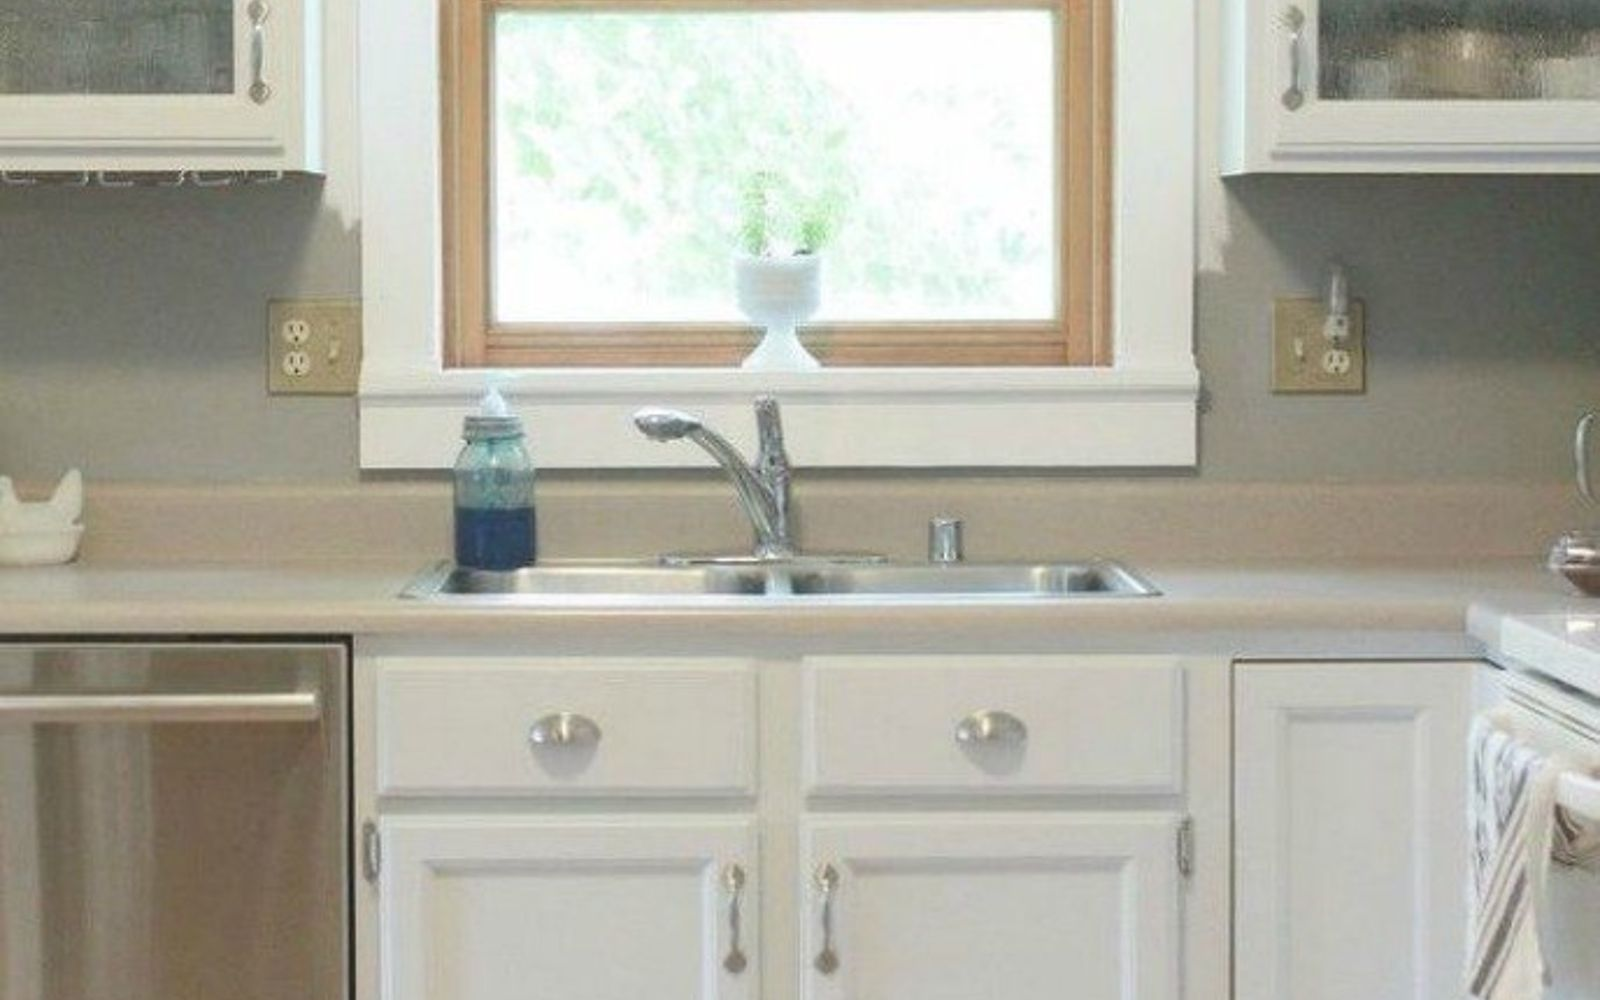 s don t paint your cabinet before you see these 11 tips, kitchen cabinets, kitchen design, 11 Give yourself plenty of time